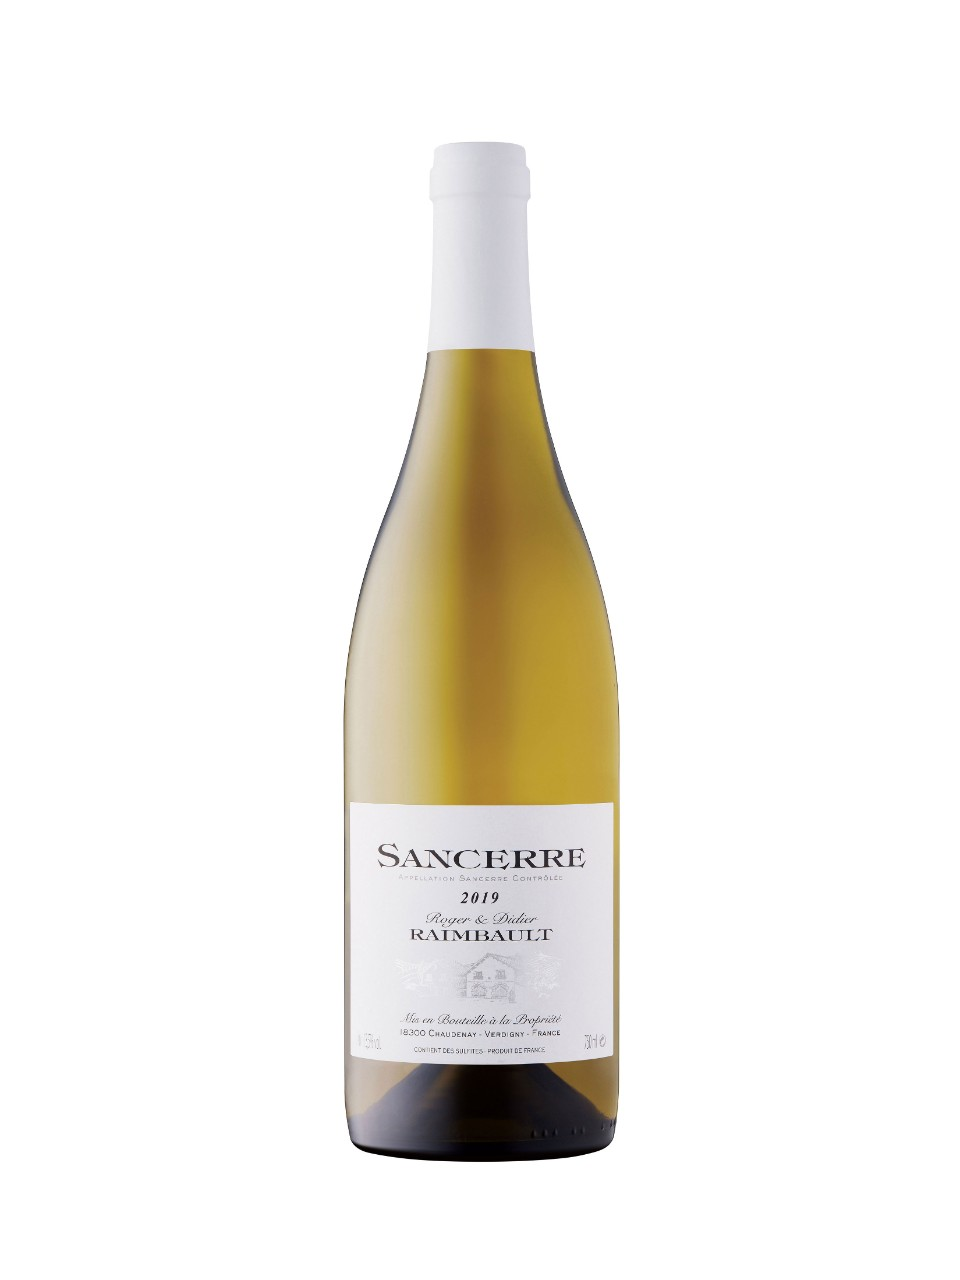 Image for Roger & Didier Raimbault Sancerre 2017 from LCBO